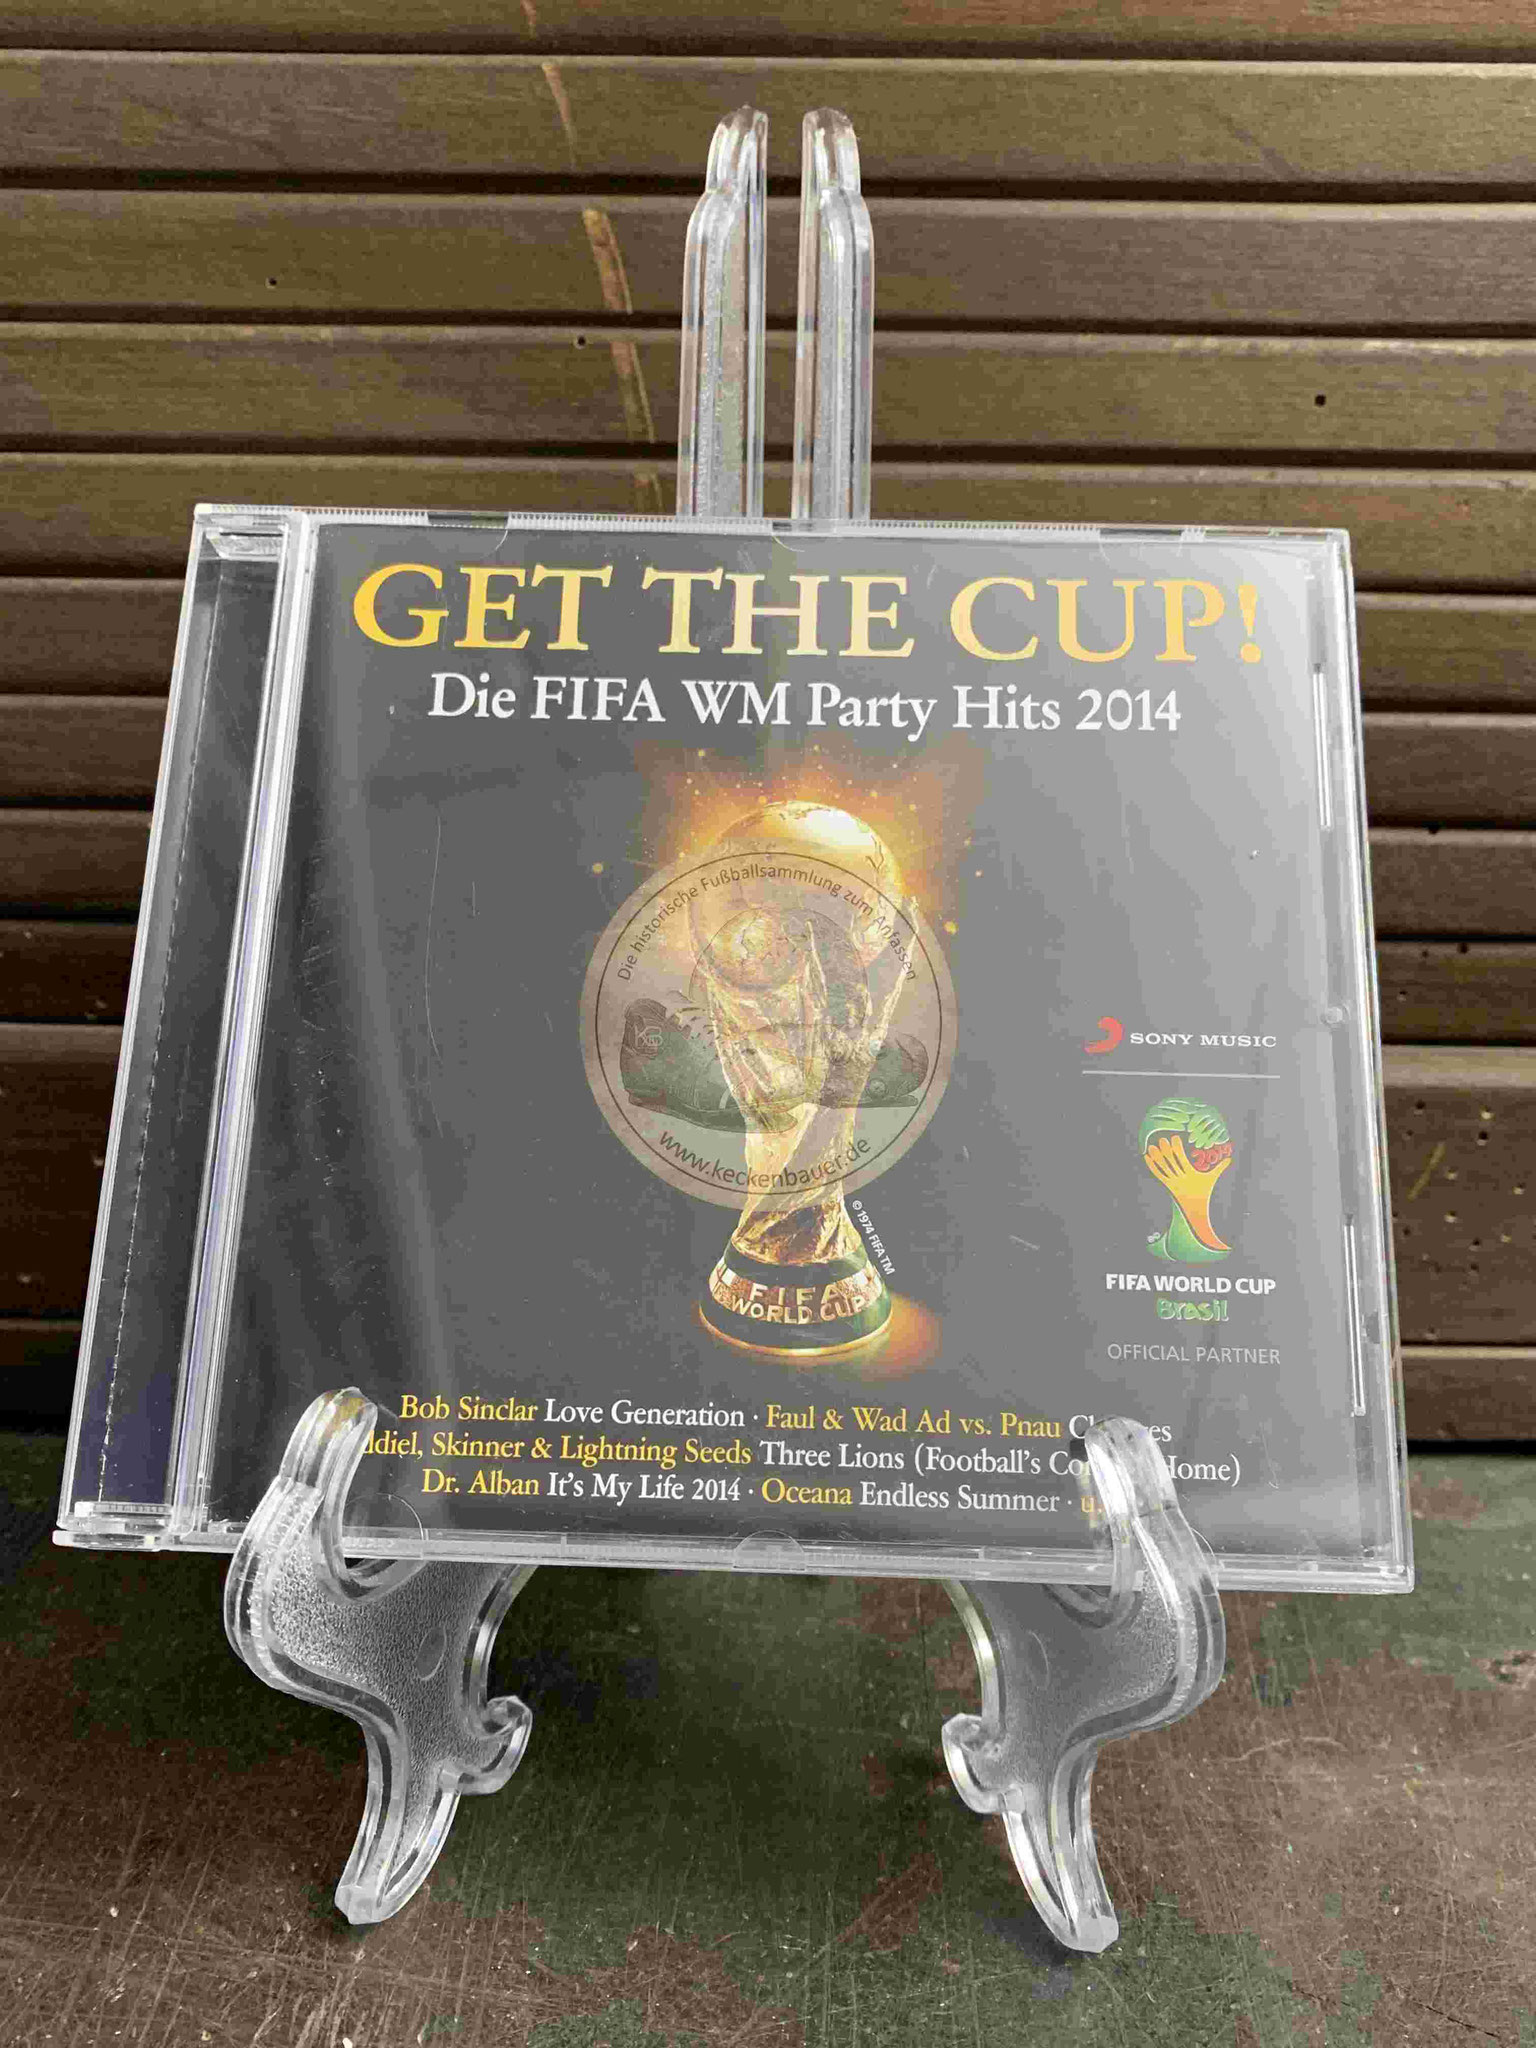 2014 GET THE CUP Die FIFA WM Party Hits 2014